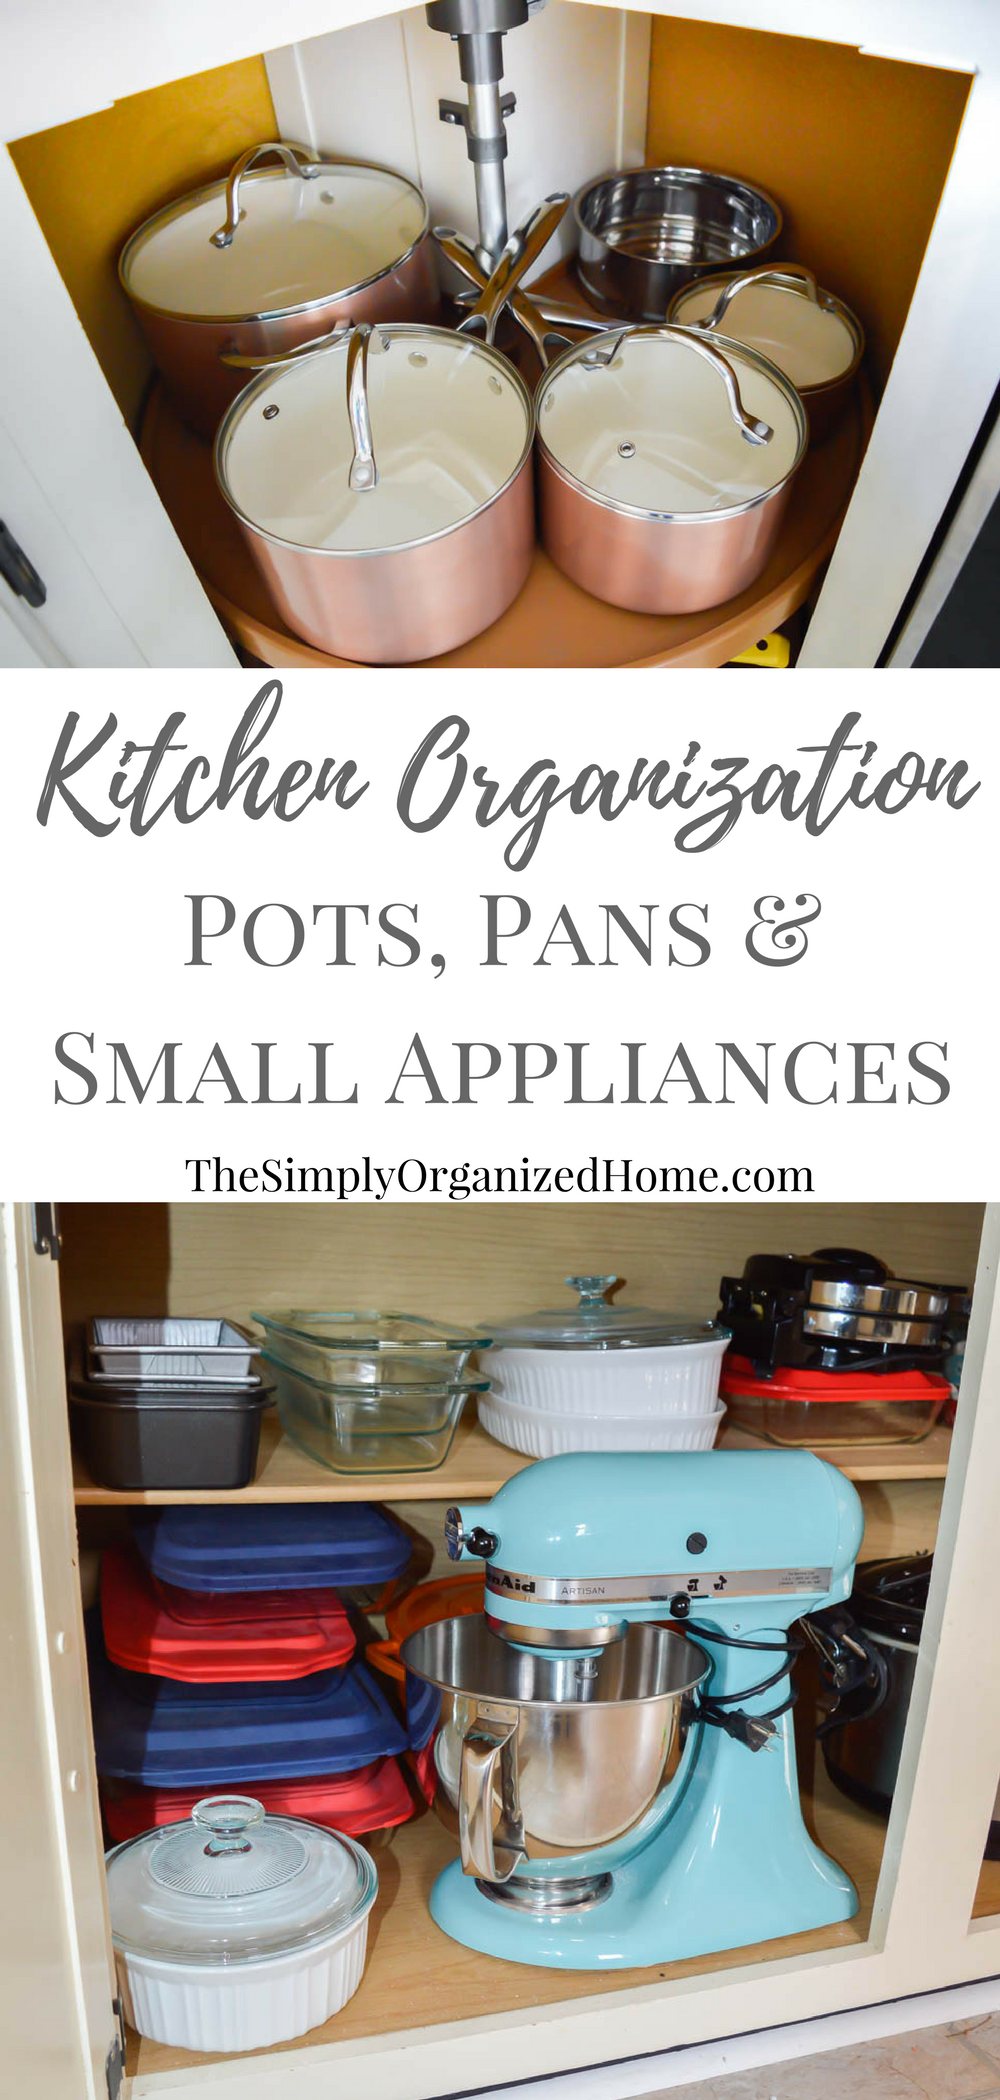 kitchen organization organizing pots pans small appliances with images pan storage diy on kitchen organization pots and pans id=34130